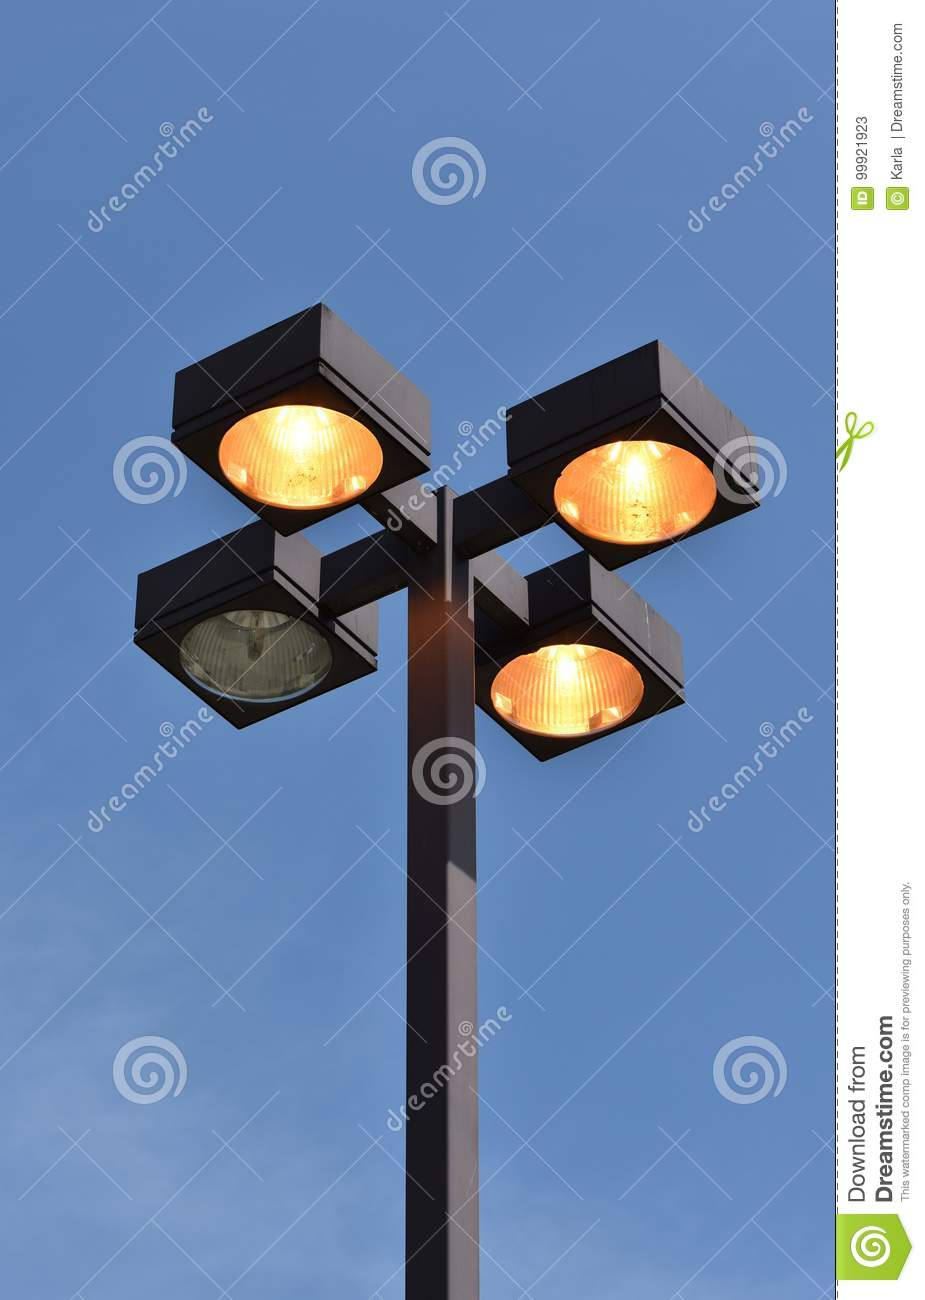 Outdoor light pole with four fixtures stock image image of light download outdoor light pole with four fixtures stock image image of light security aloadofball Image collections